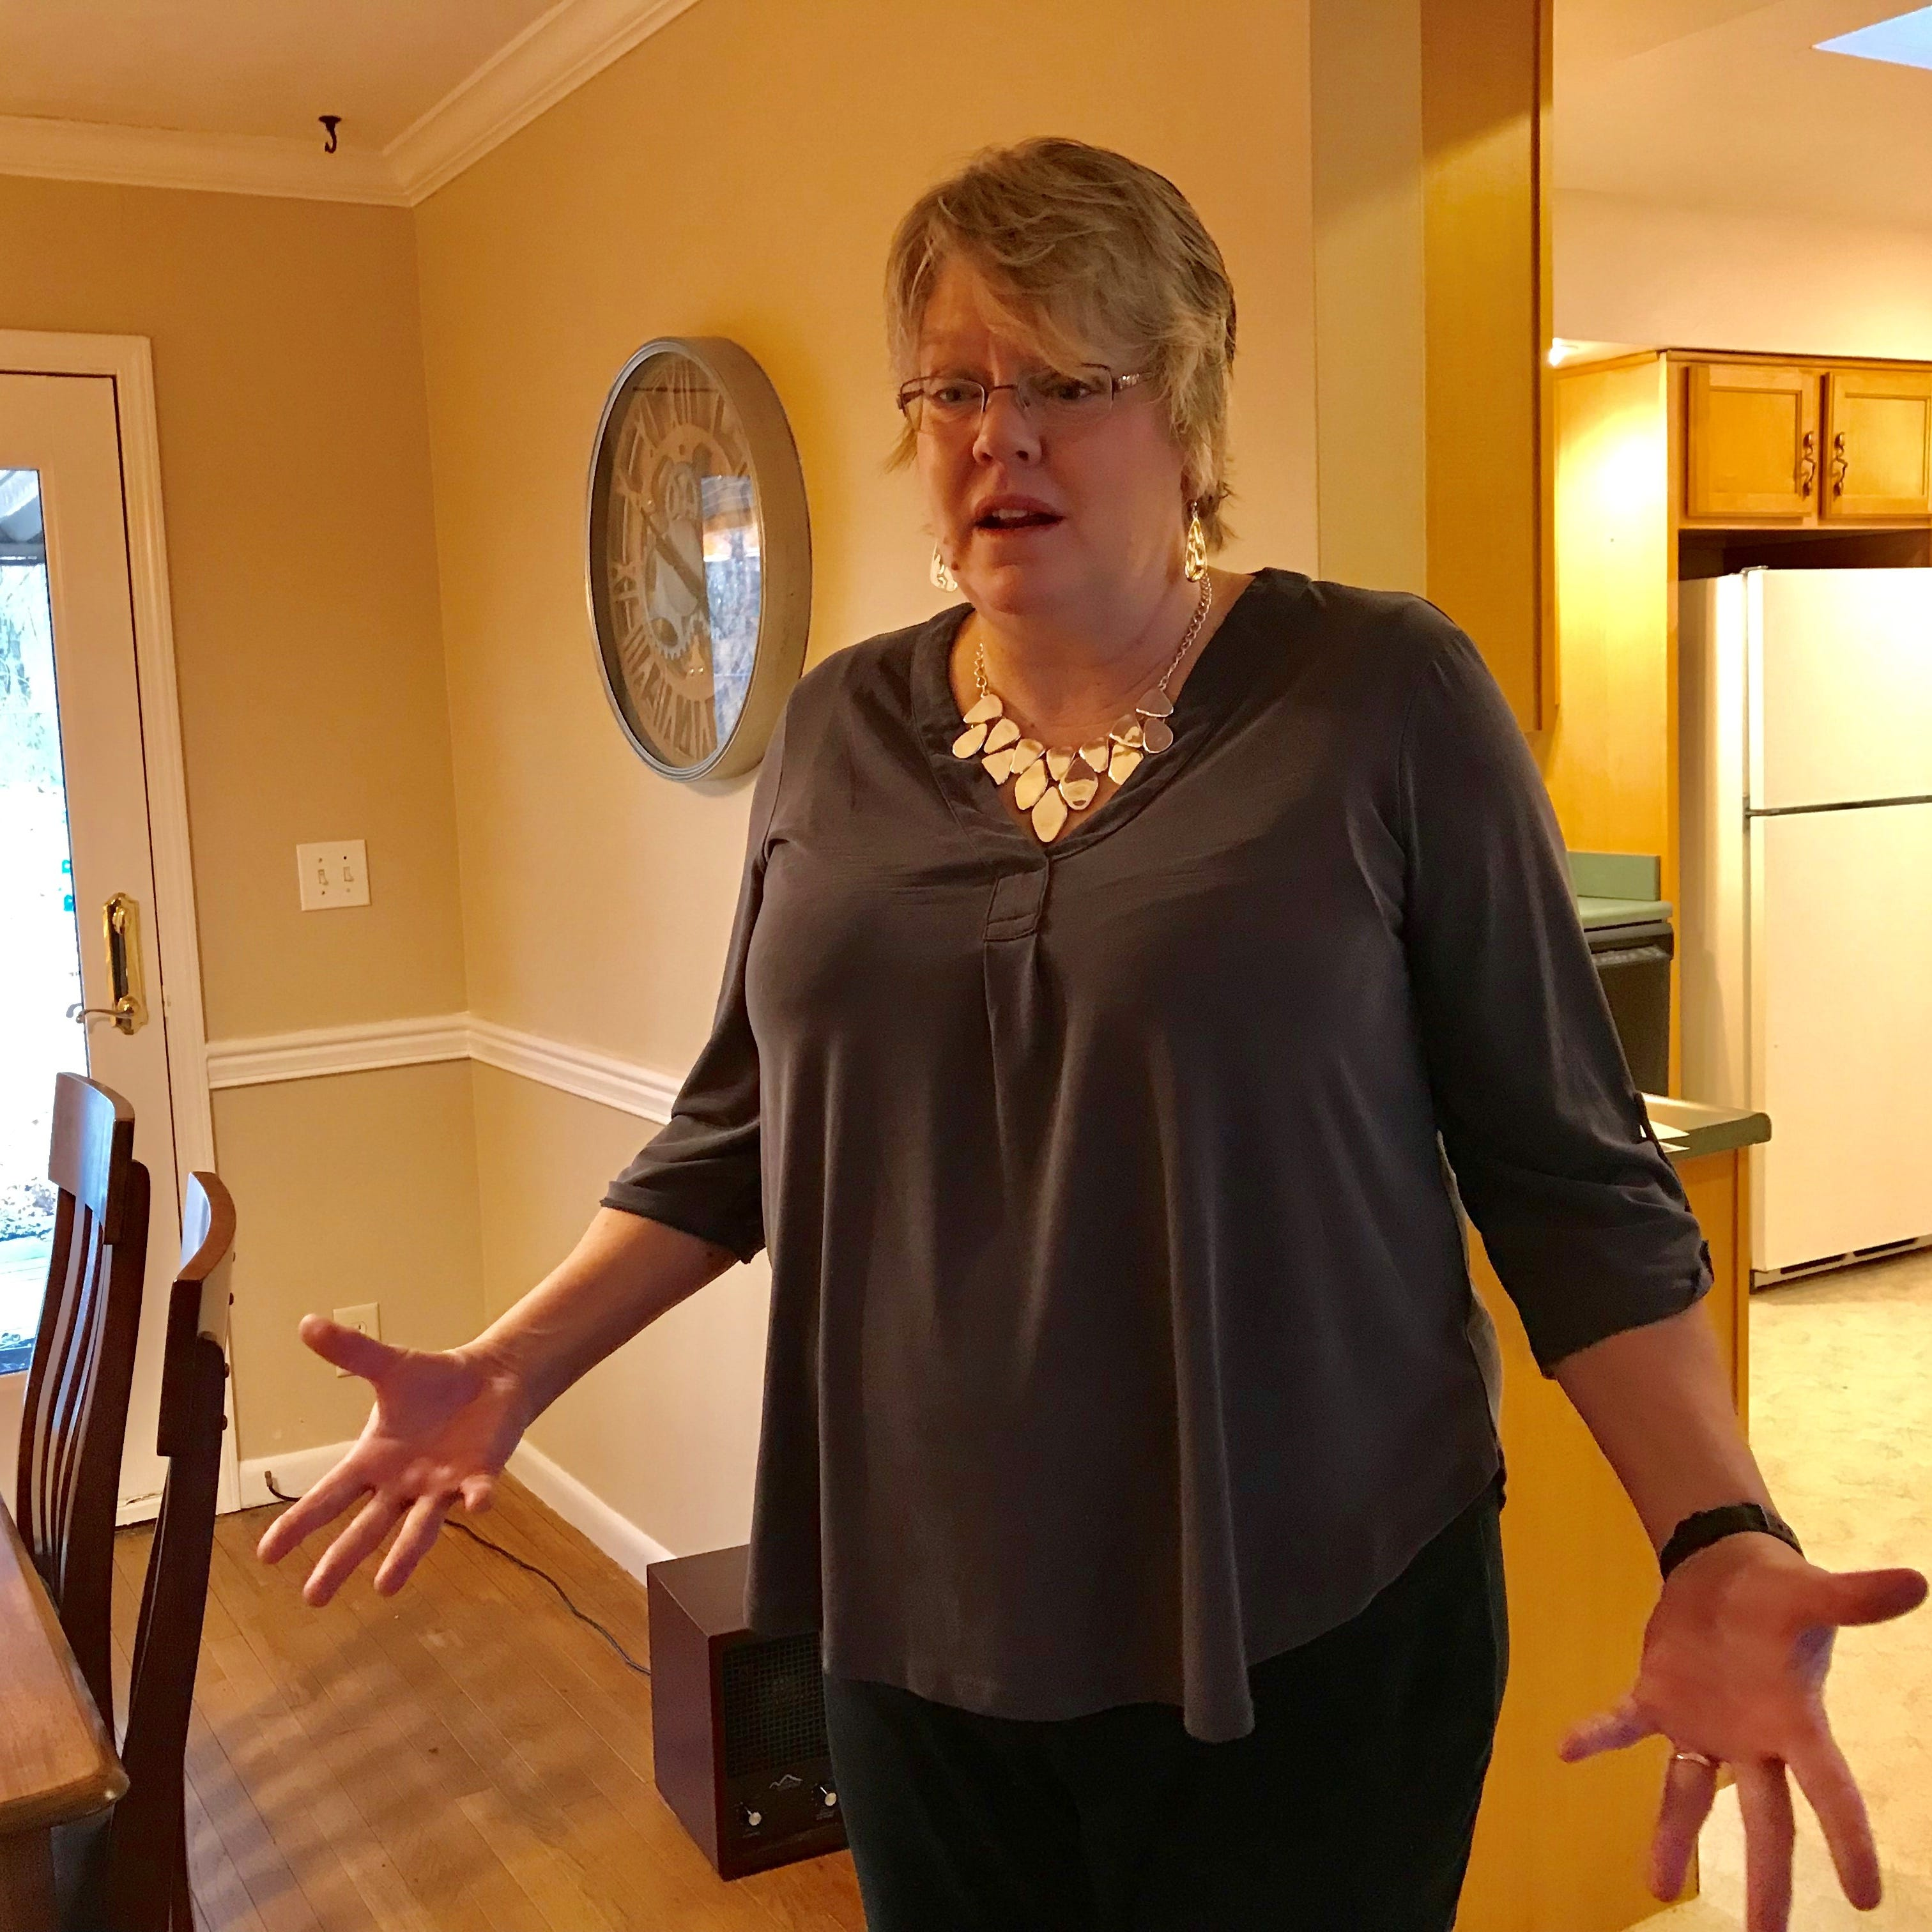 Bangert: Home buying 'nightmare' as family waits out shutdown in mother-in-law's basement